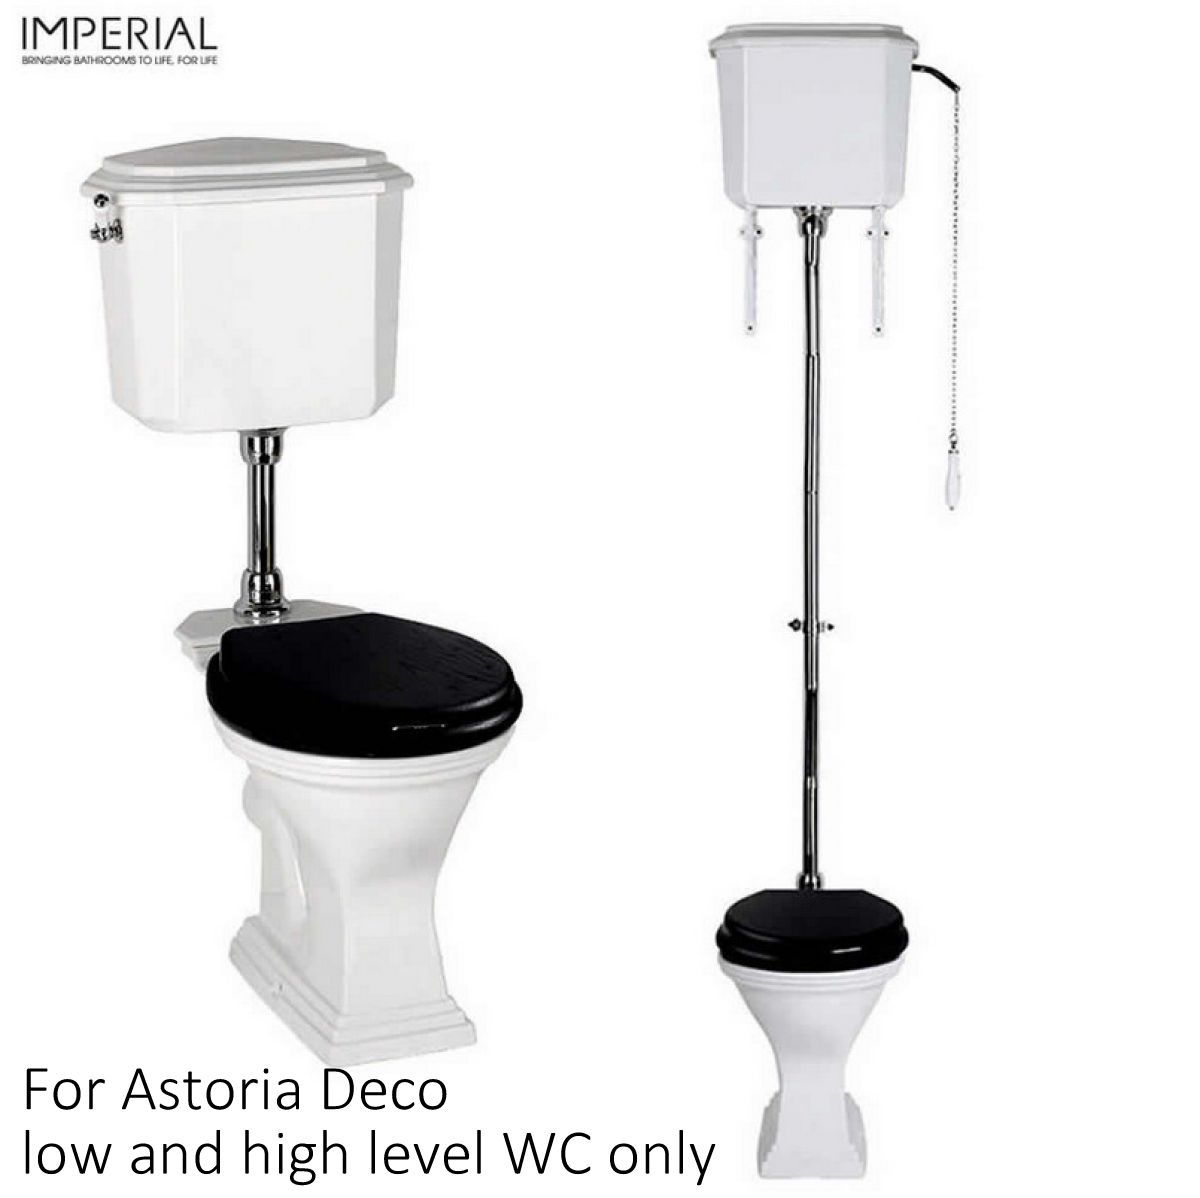 Imperial astoria deco oval toilet seat uk bathrooms - Deco toilet wc ...